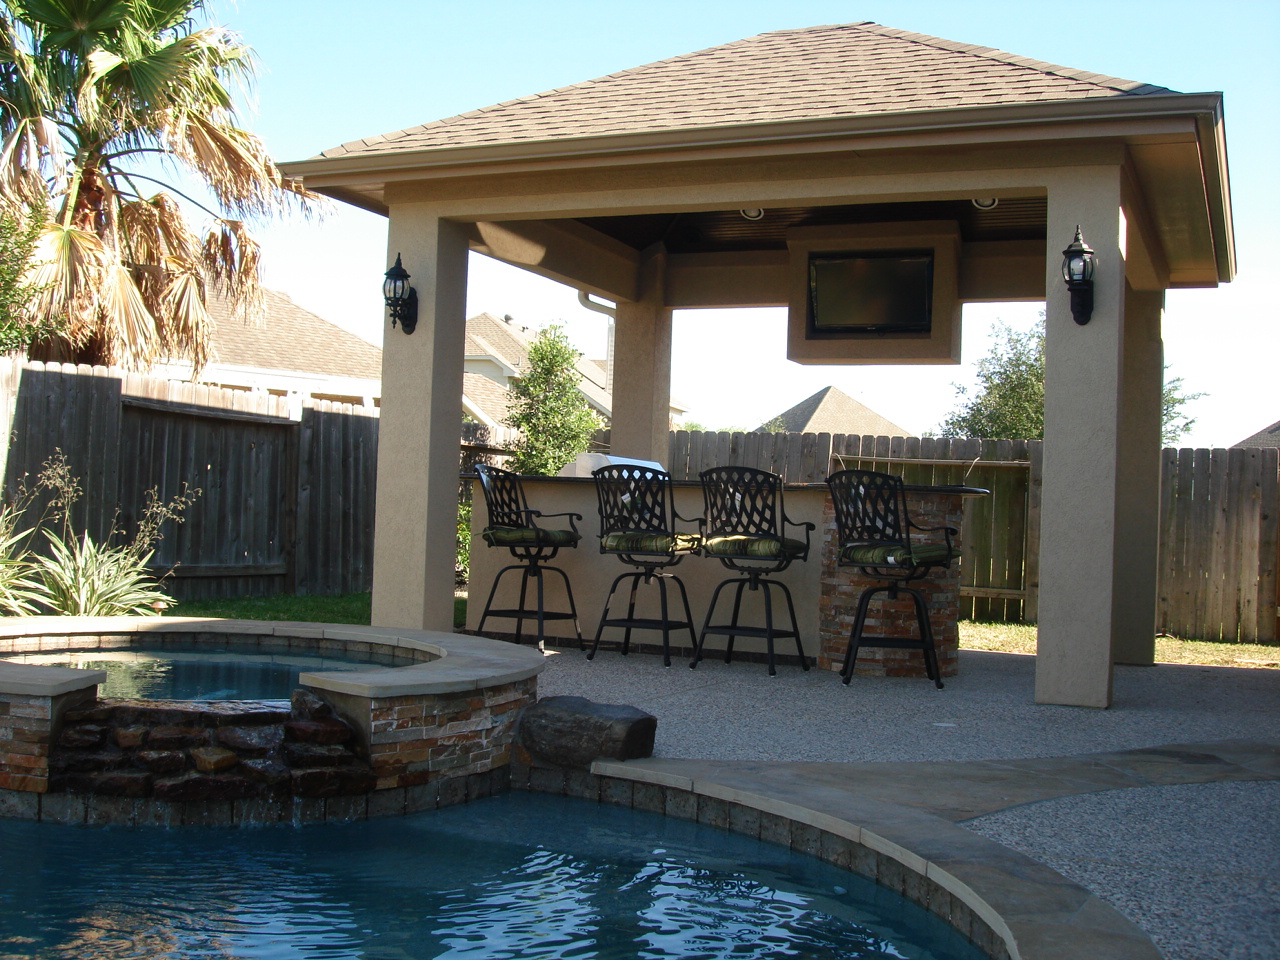 Beau Slate Patio Table Repair Tags 99 Surprising Slate Patio Pictures Within  Size 1280 X 960